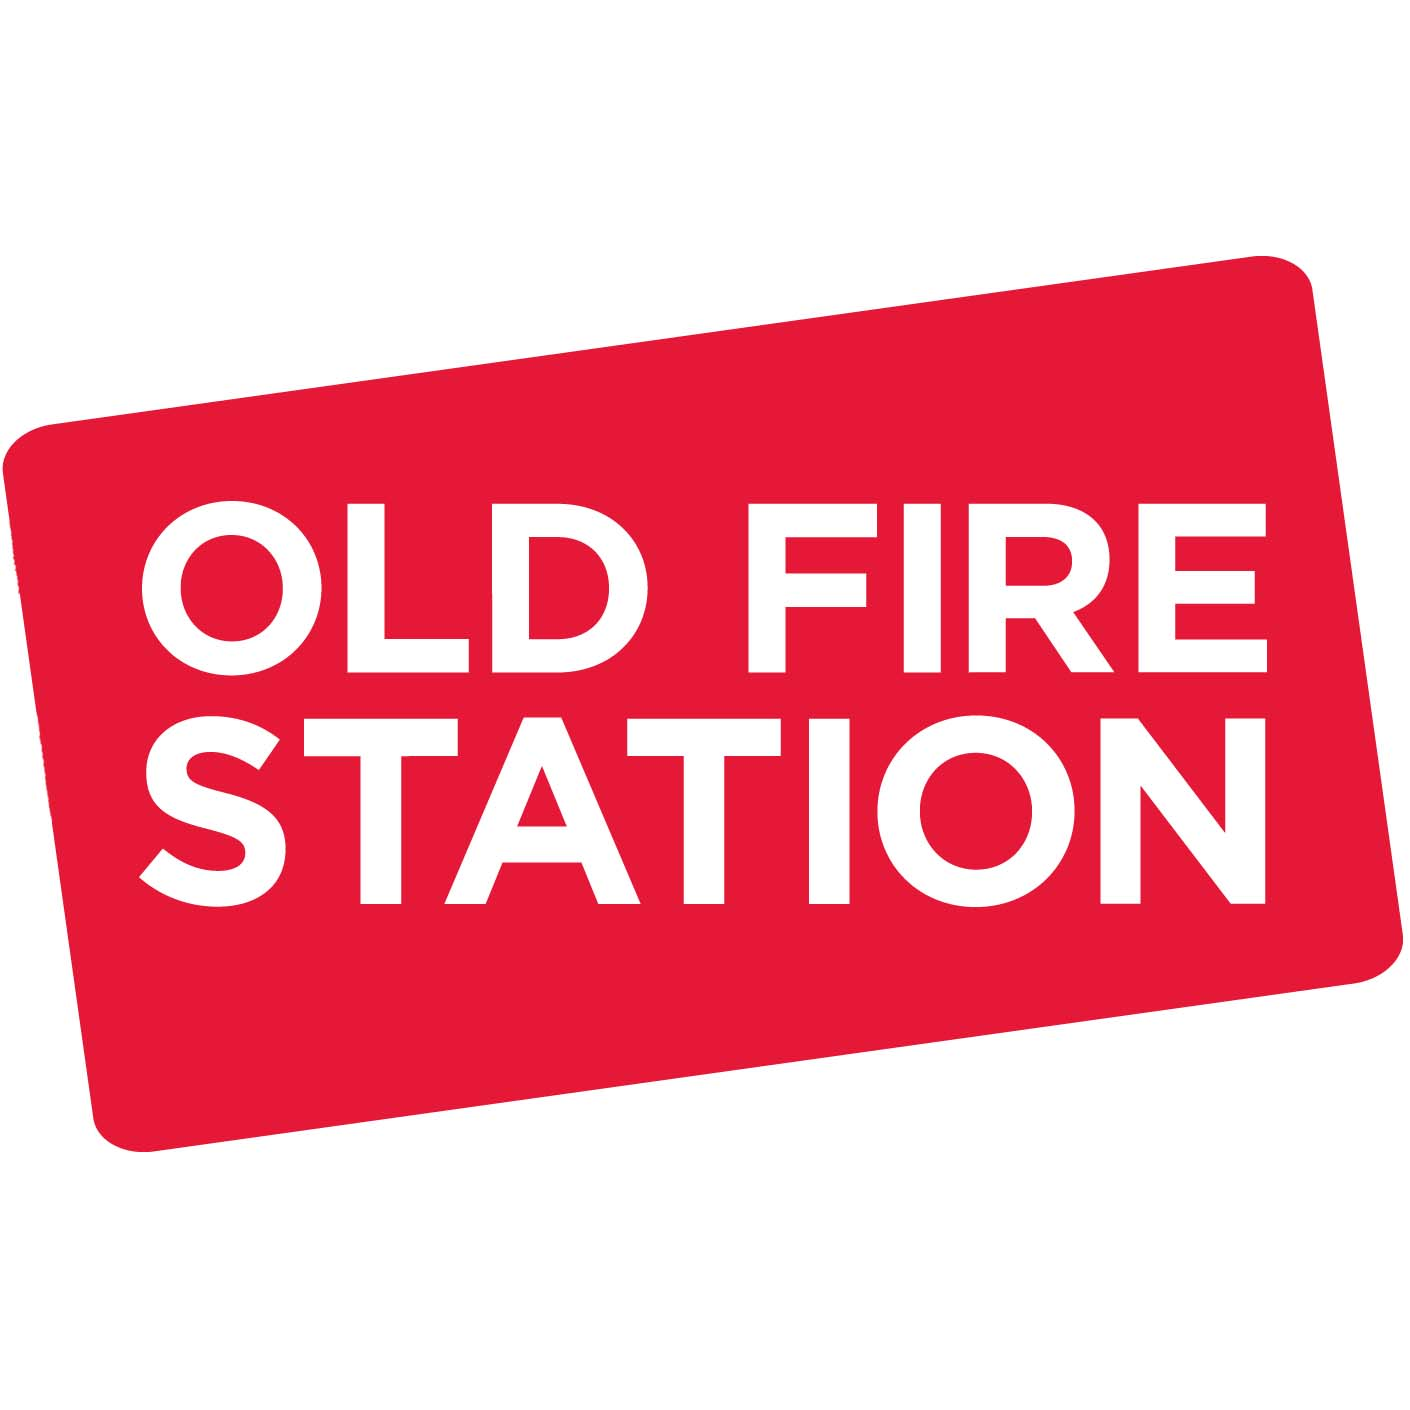 Old Fire Station in white capital text on a red rectangular background.